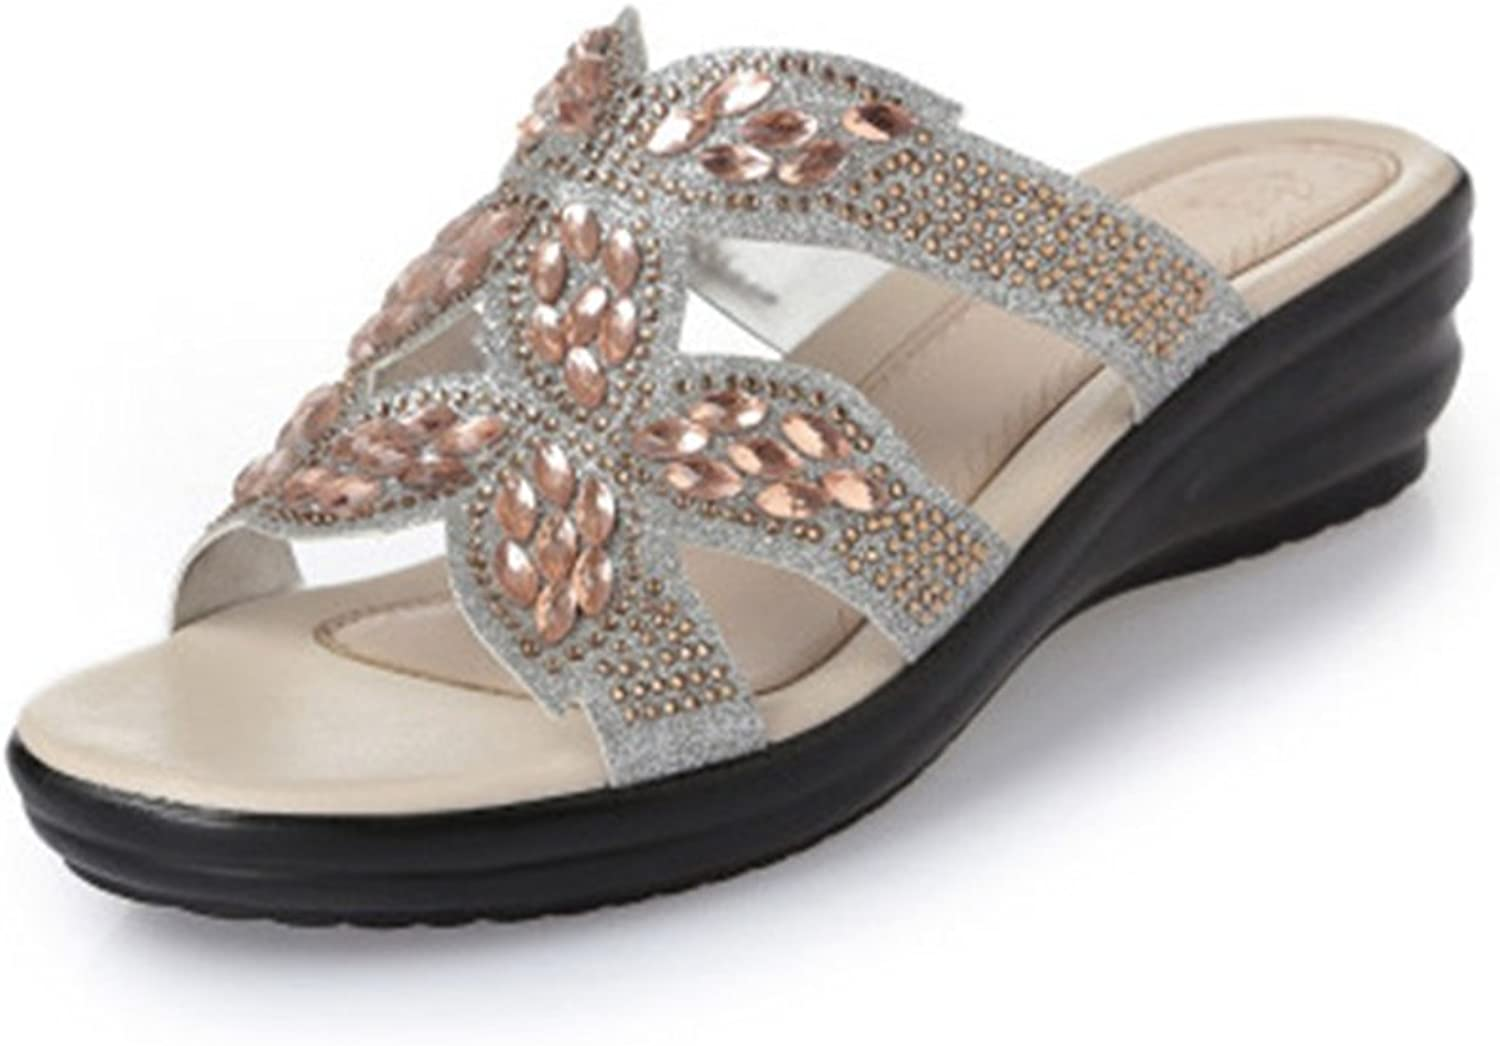 GIY Womens Rhinestone Low Wedges Slide Sandals Strappy Open Toe Platform Comfort Sparkly Dress Sandals